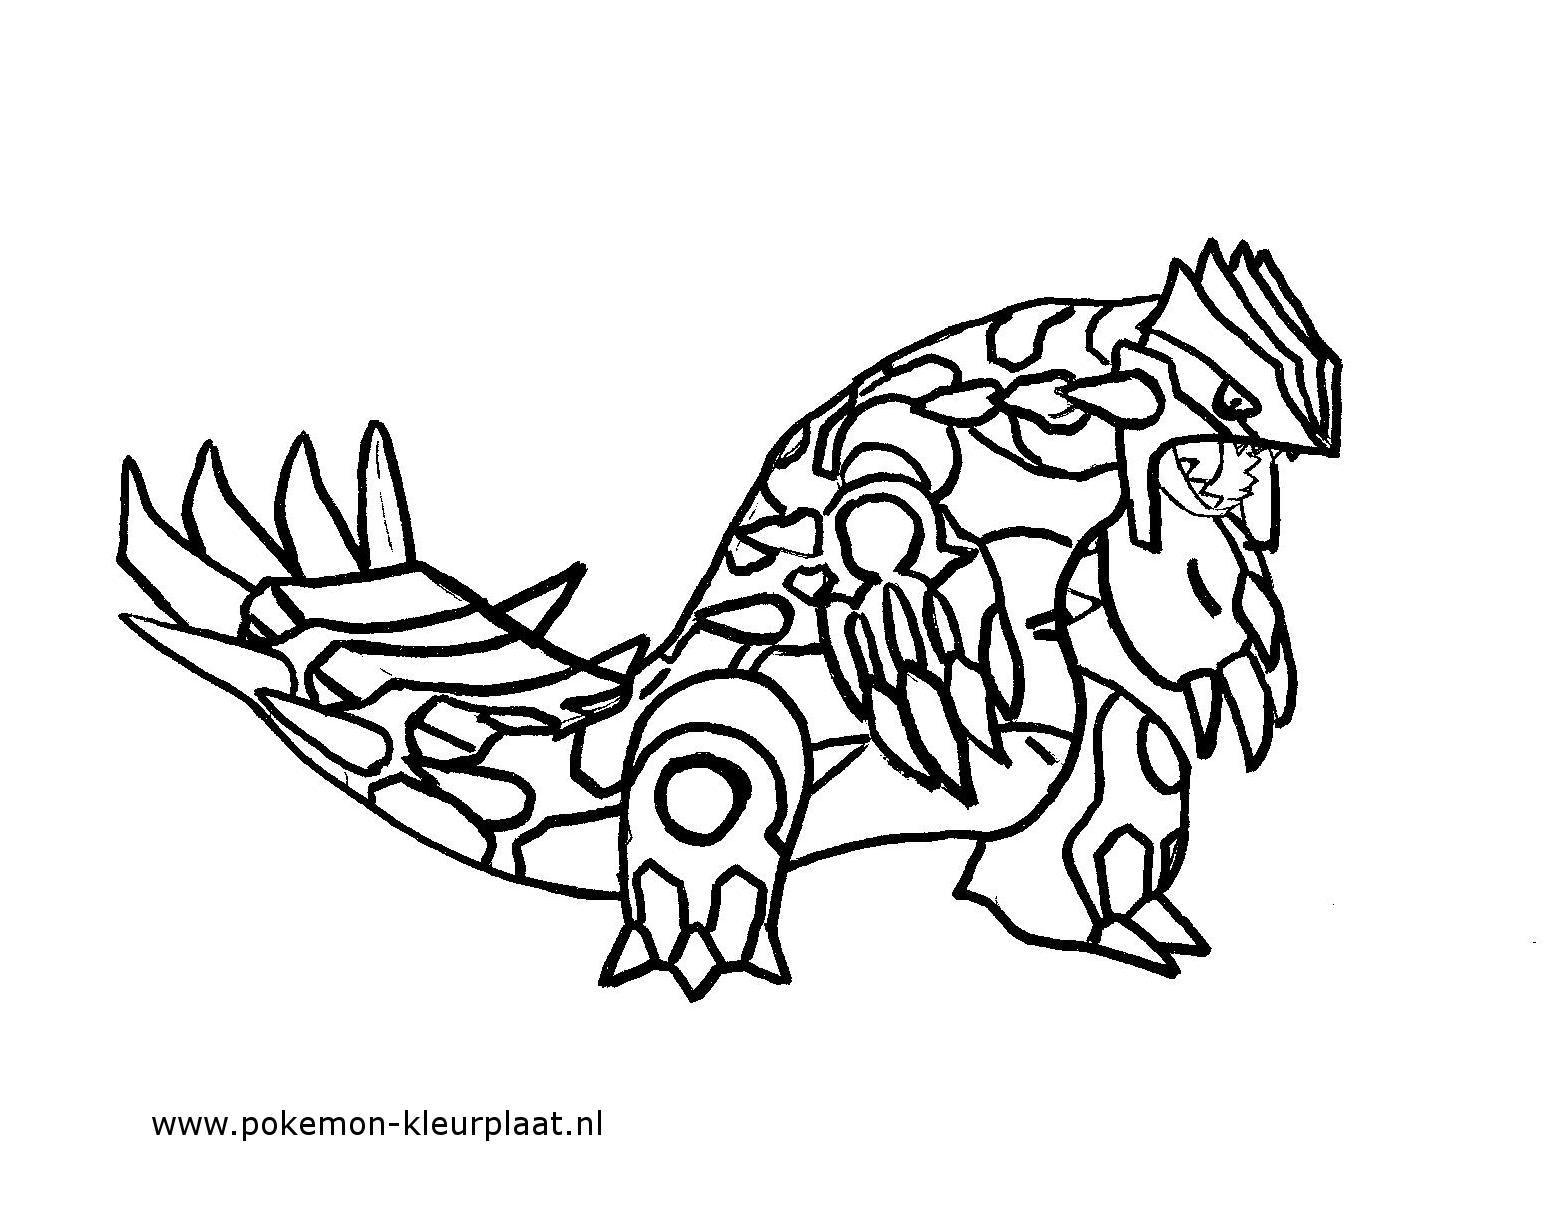 pokemon groudon ex coloring pages-#16